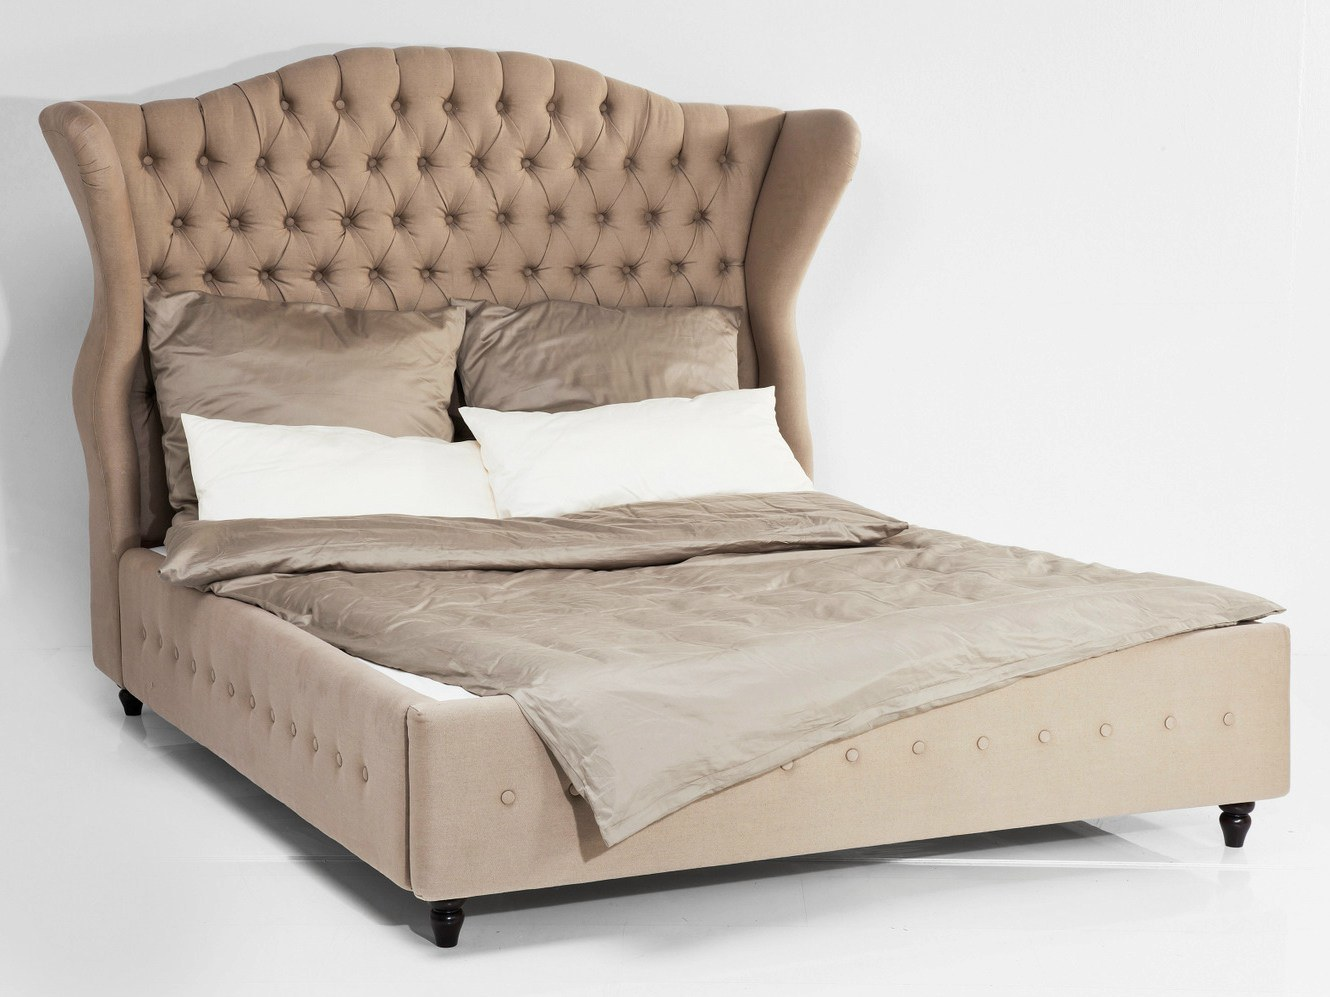 European Modern Cloth Art Bed Home Furniture